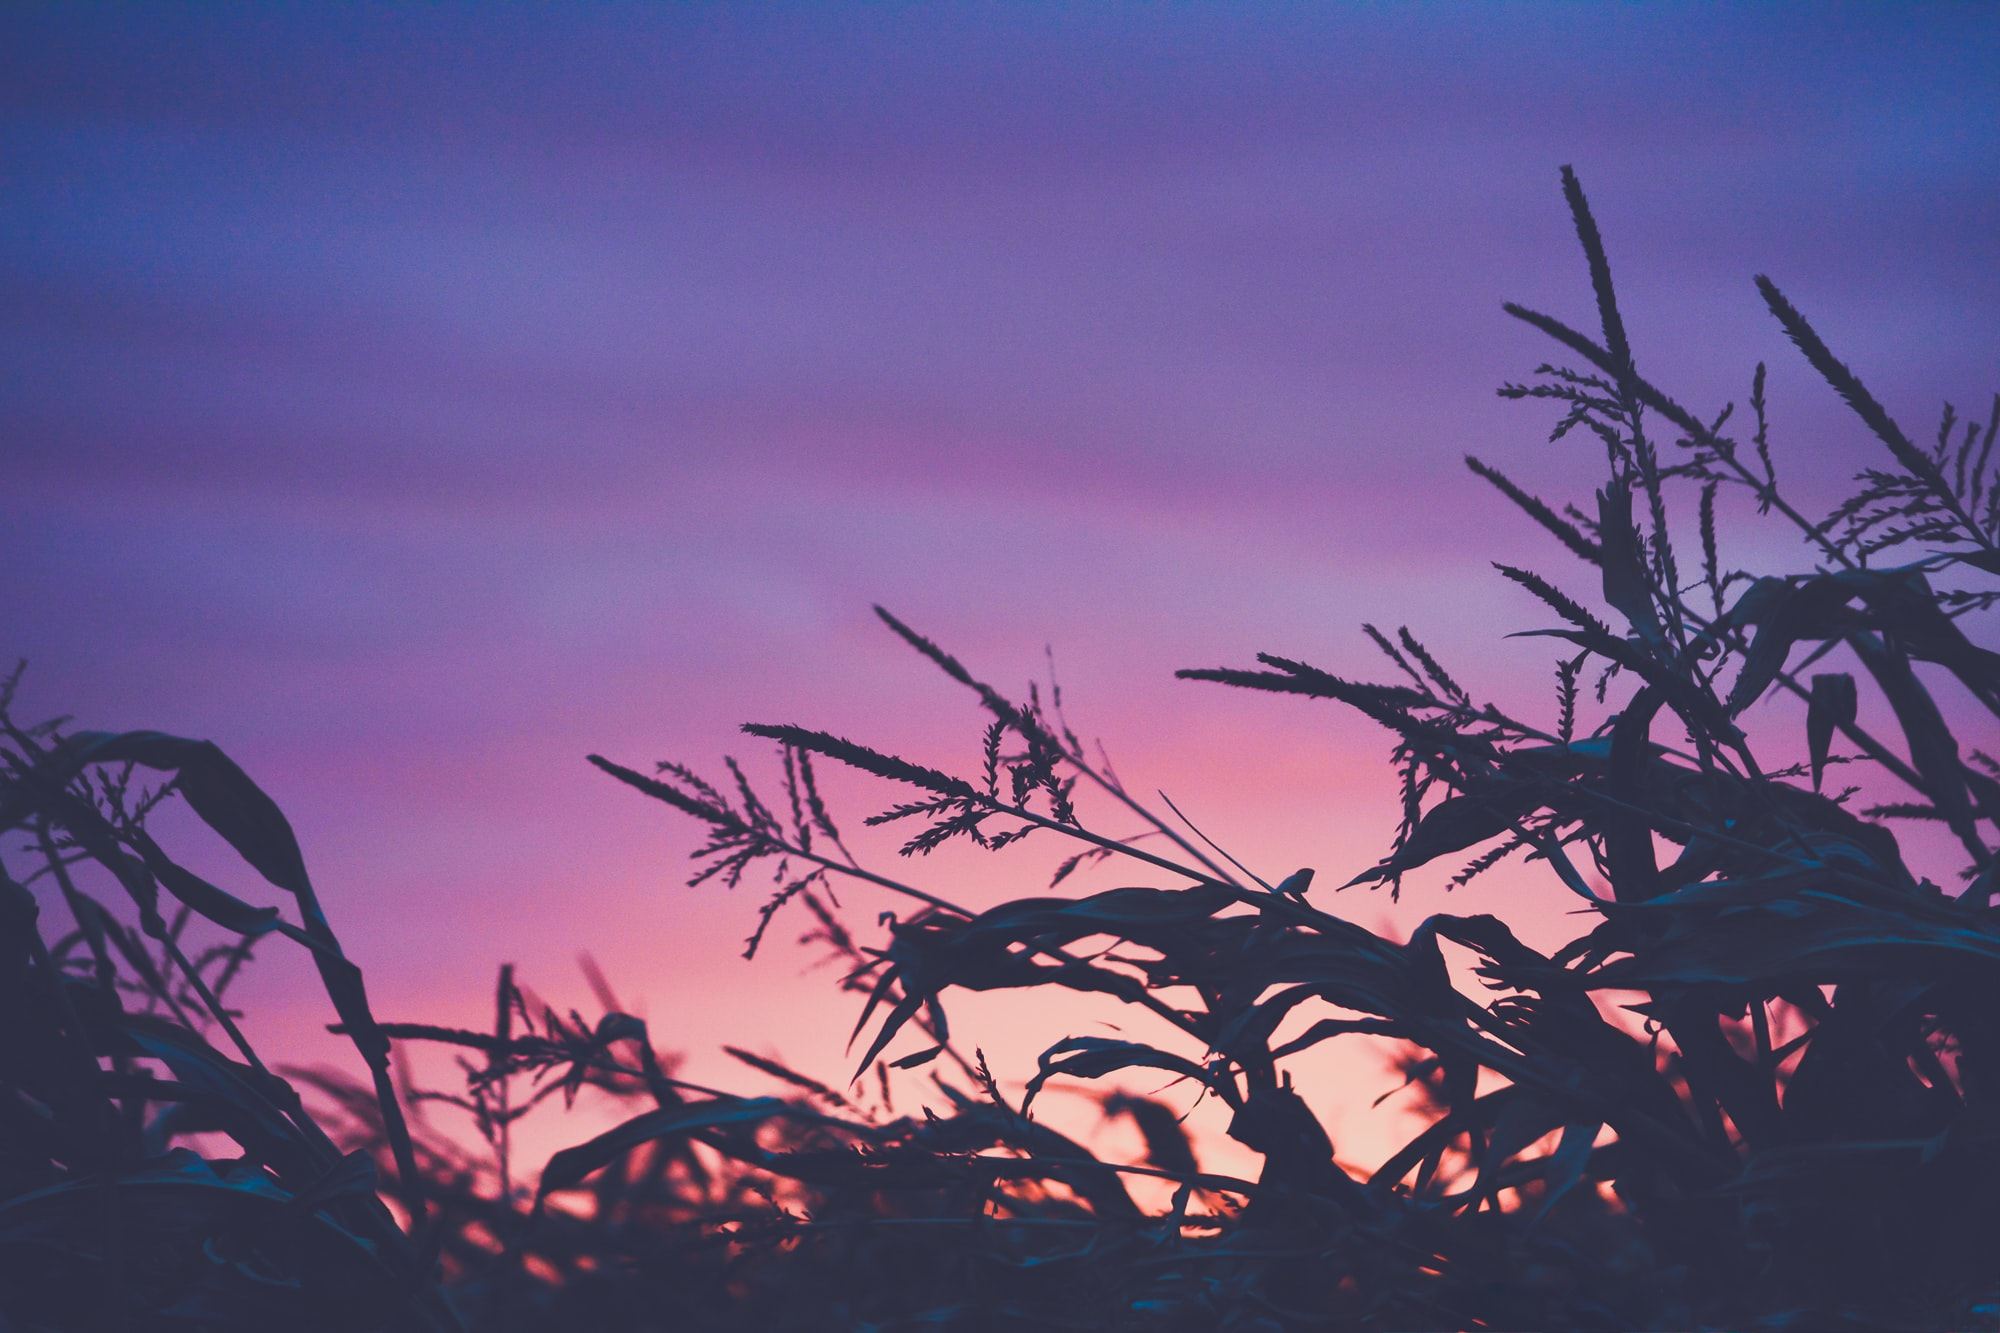 A pink and purple sunset creates silhouettes of crops in a corn field